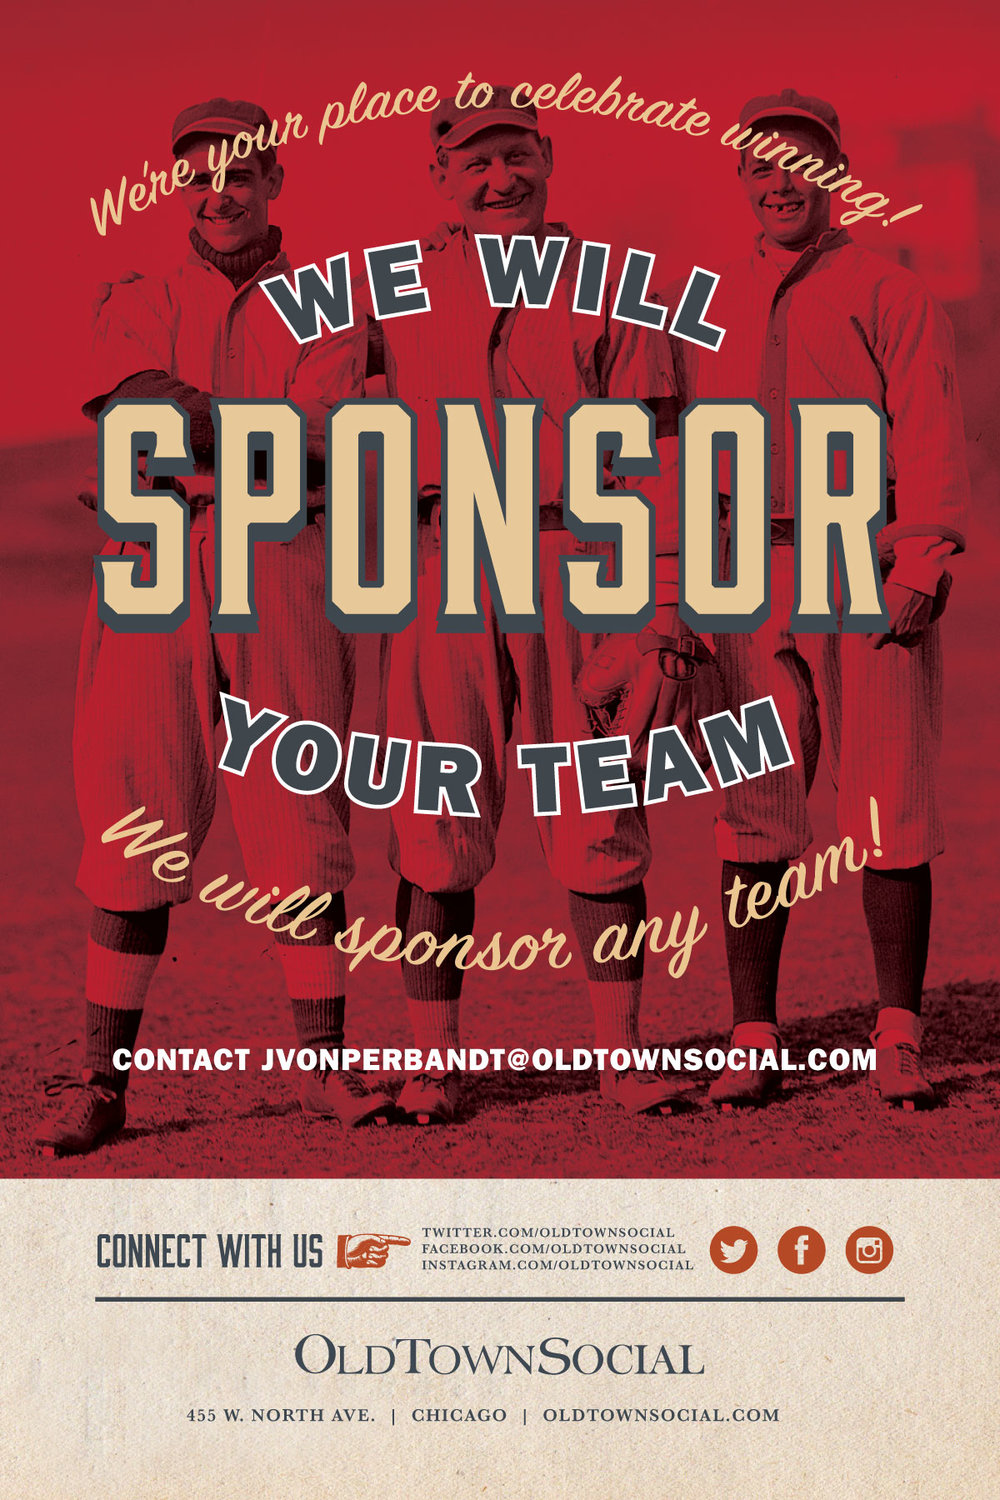 ots_team_sponsorship_24x36.jpg